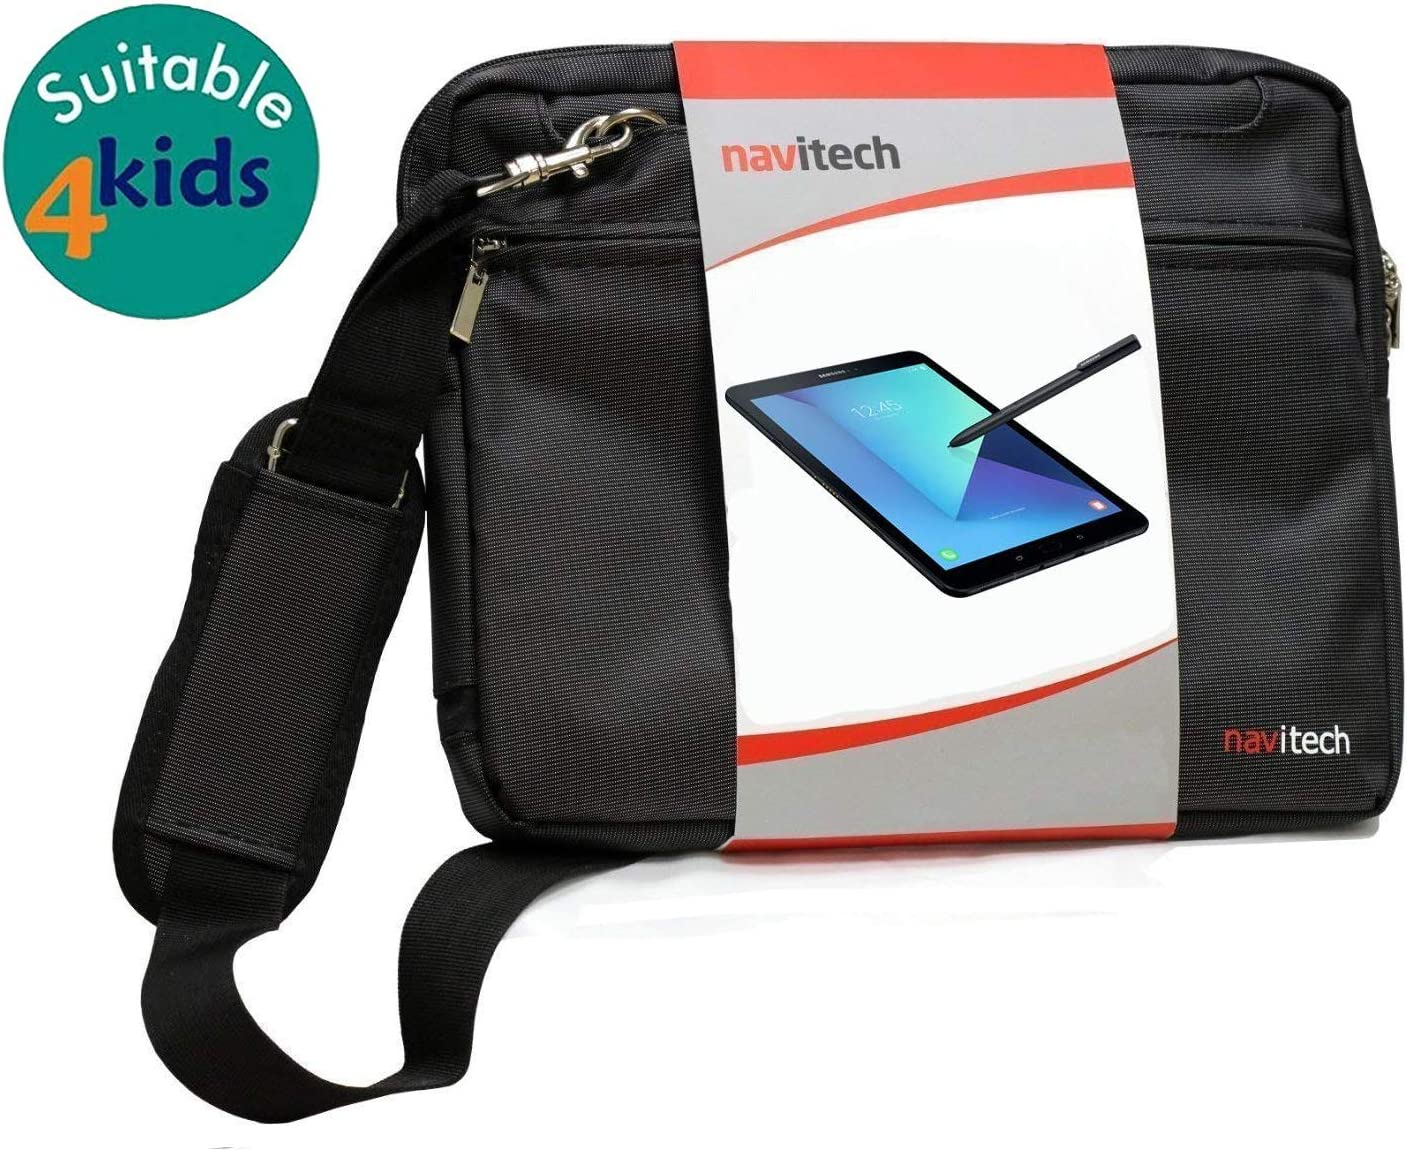 Navitech Black Sleek Premium Water Resistant Shock Absorbent Messenger Bag Compatible with The 3D Hero LCD Writing Tablet for Kids 9 Inch